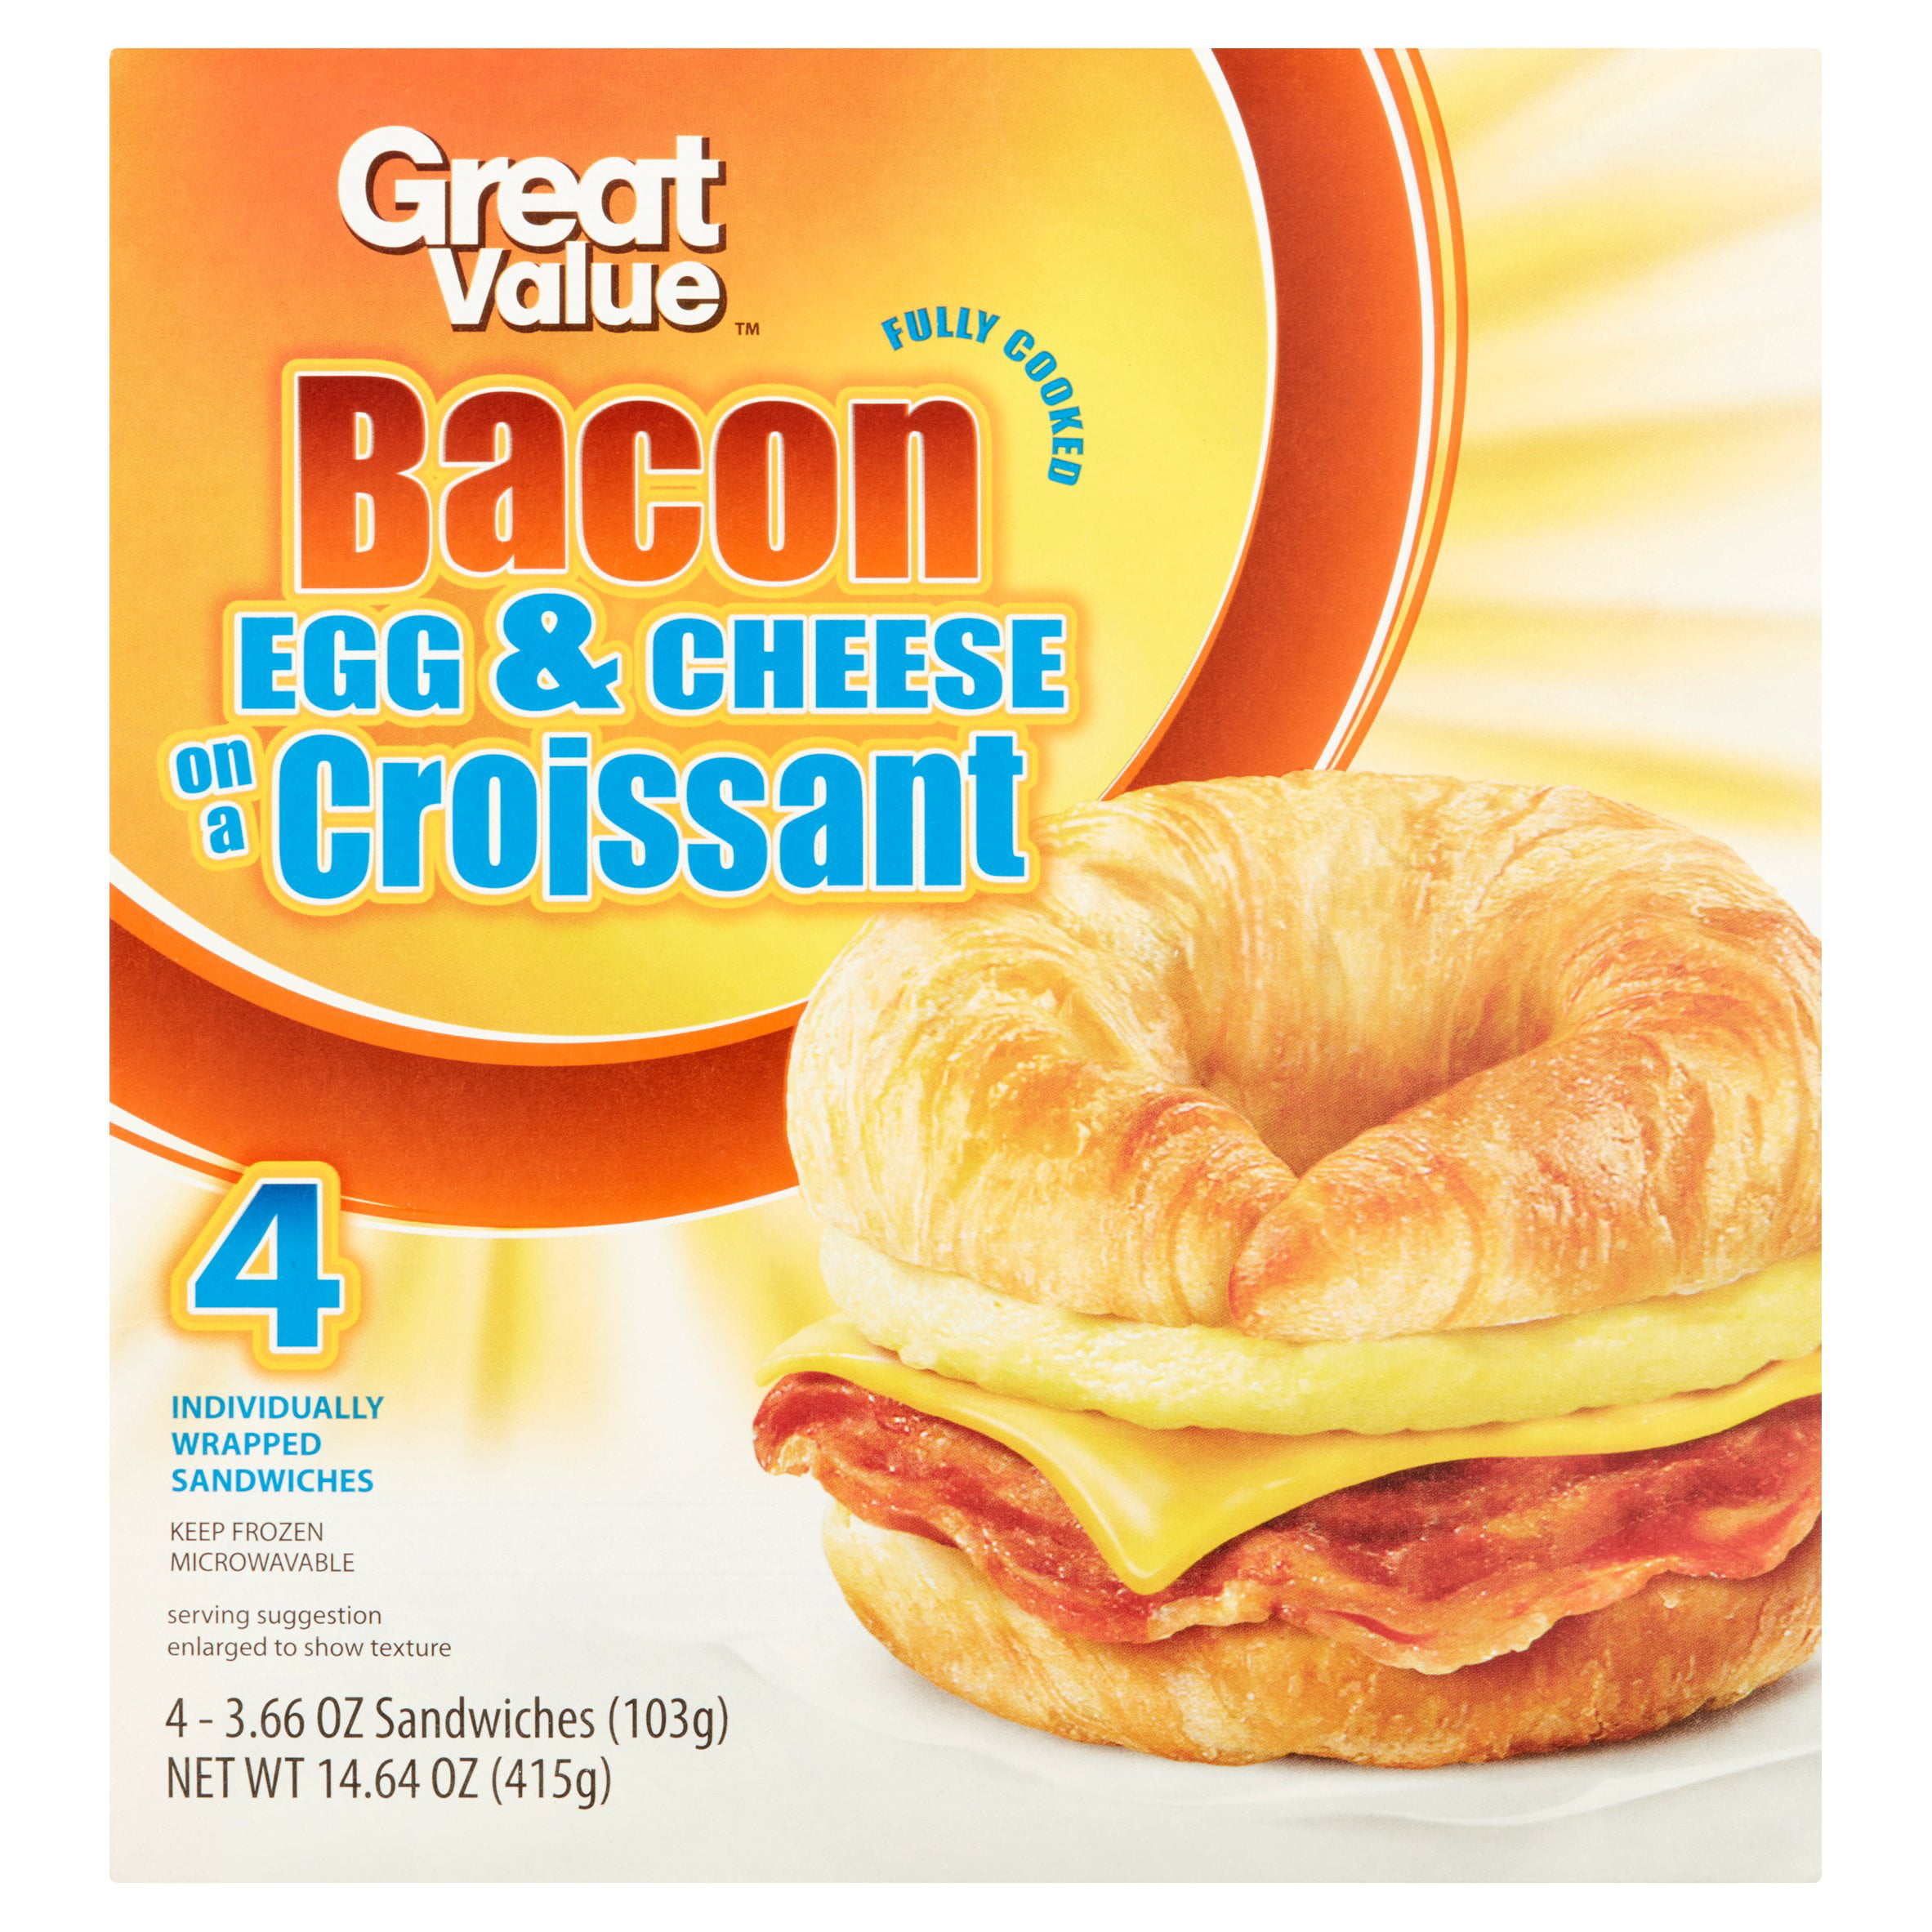 Discussion on this topic: 32 Best and Worst Frozen Breakfast Foods, 32-best-and-worst-frozen-breakfast-foods/